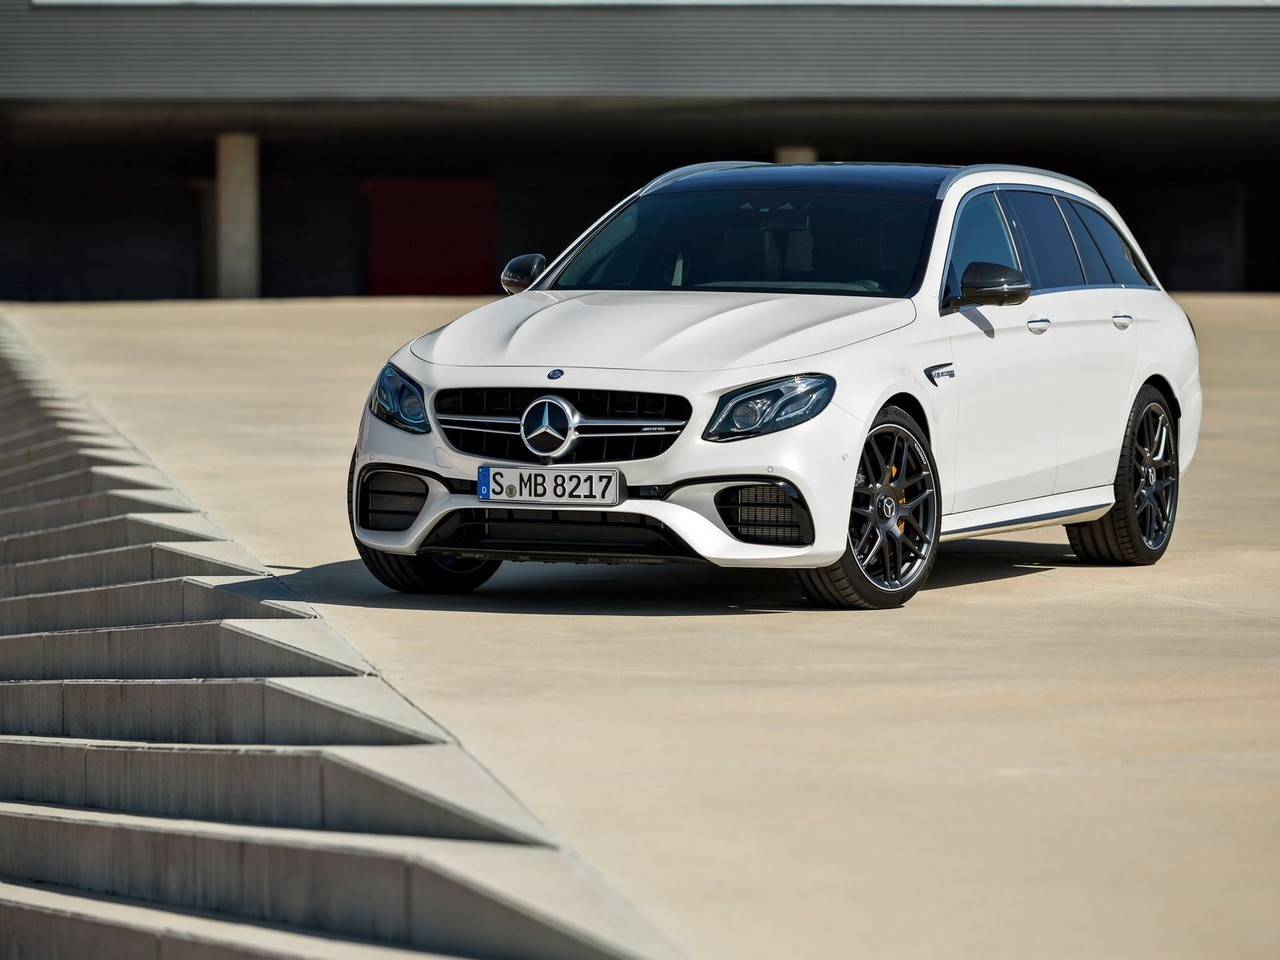 2018 Mercedes Benz E63 S AMG Estate